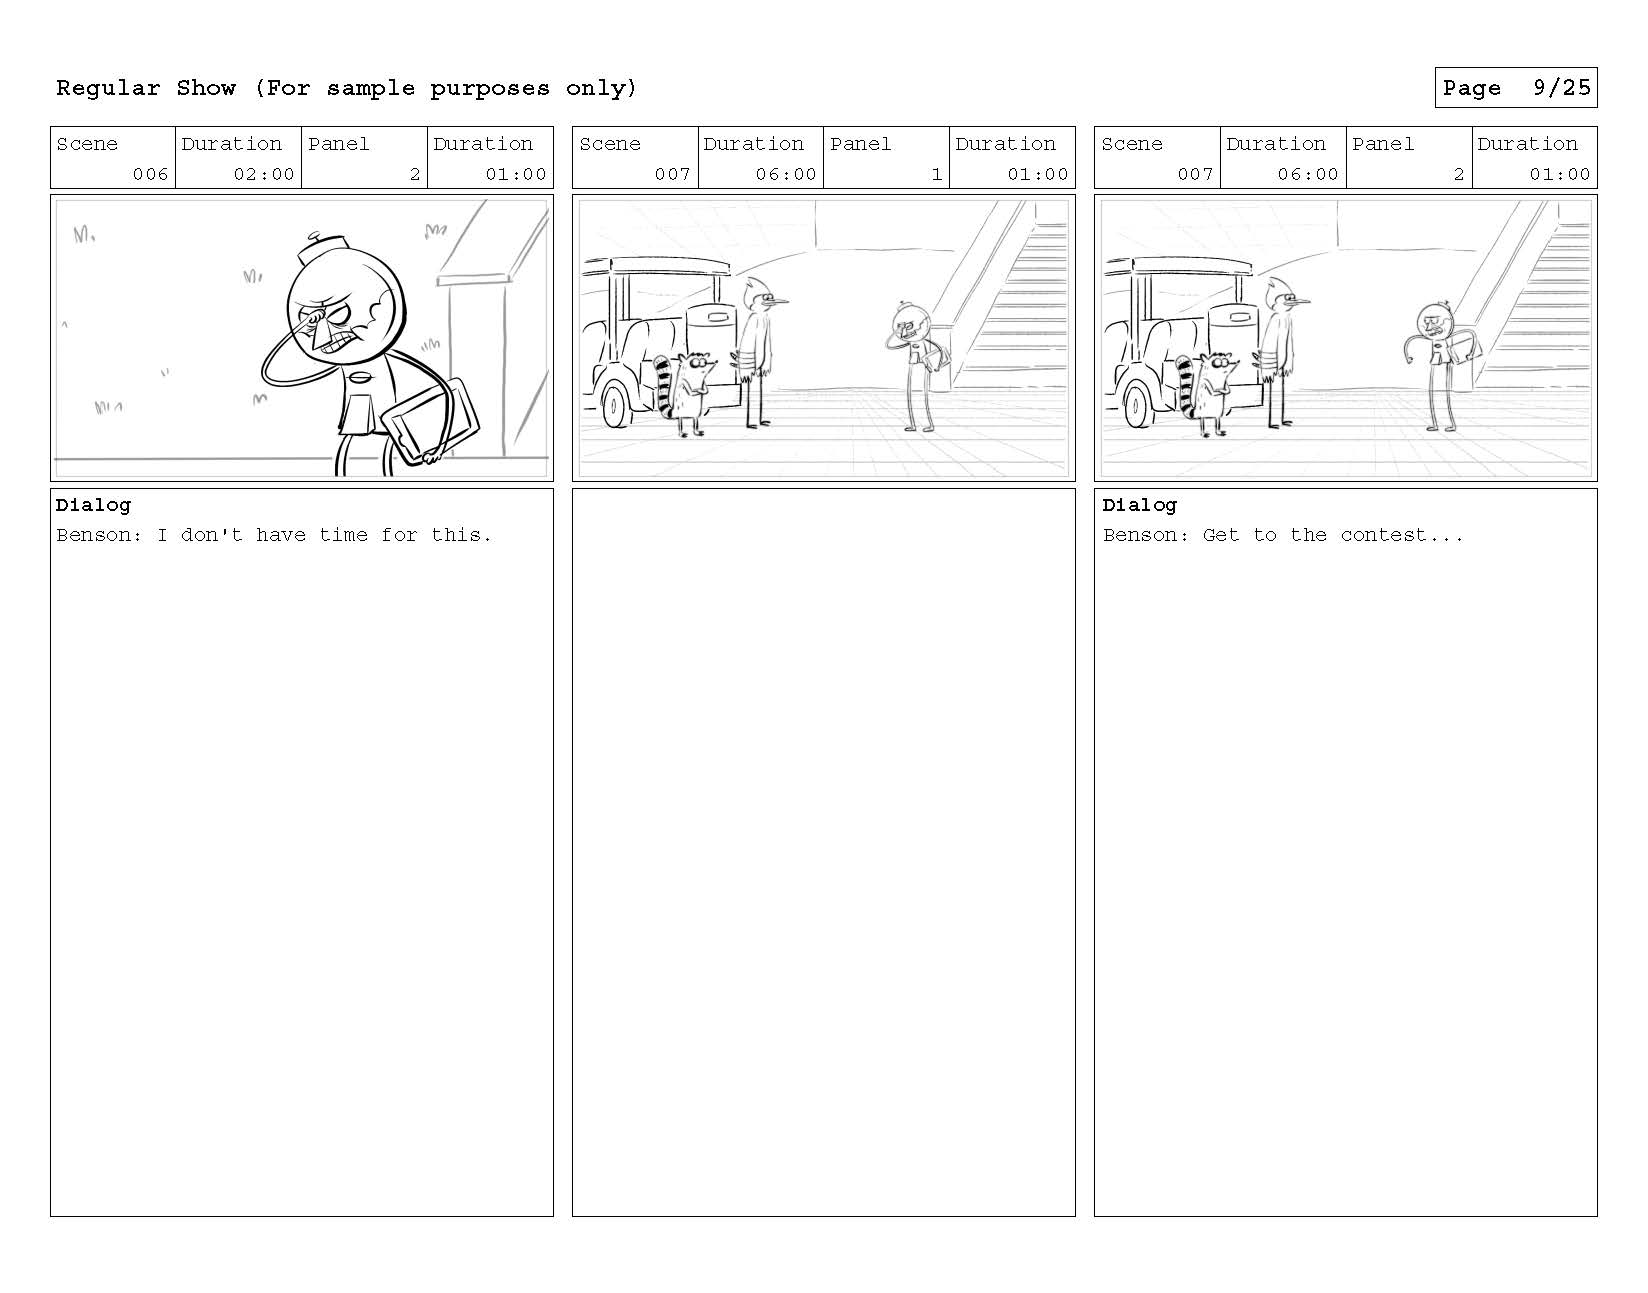 thelfer_rs_sample_Page_10.jpg